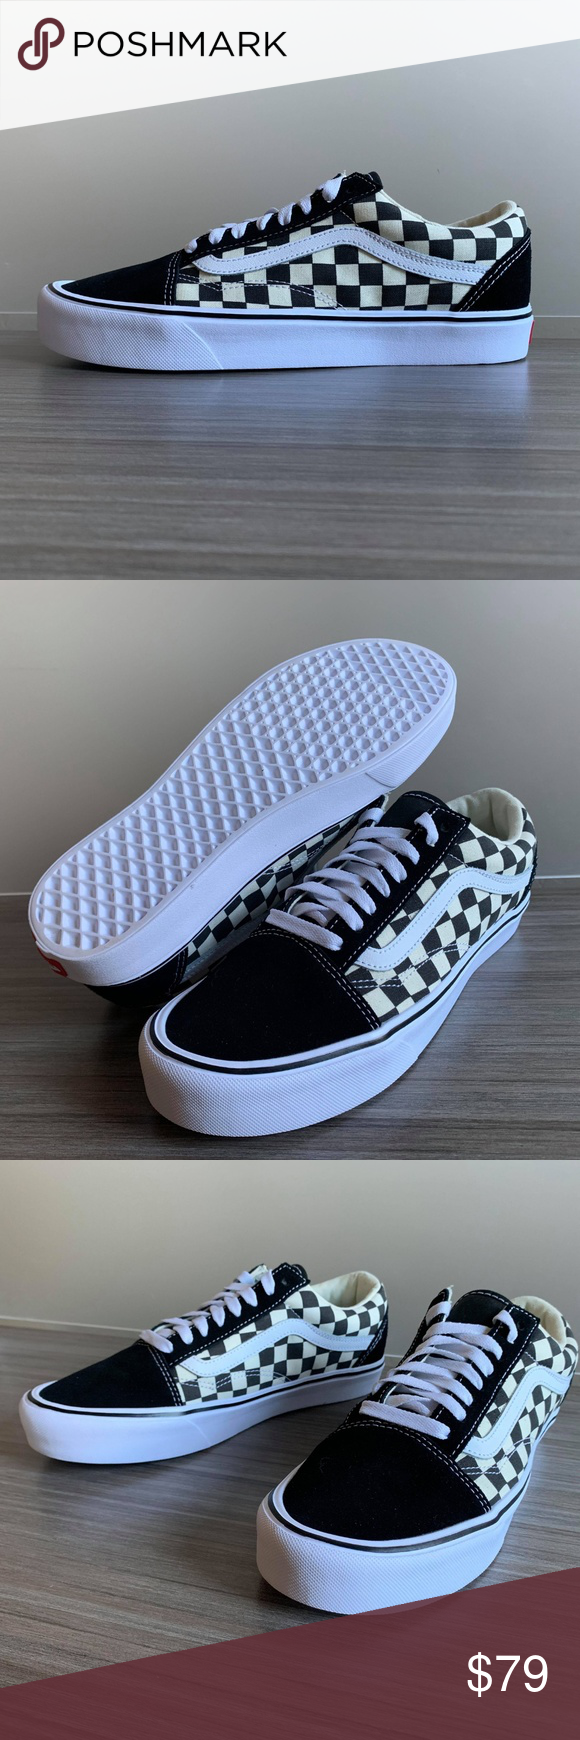 Vans Old Skool Checkerboard Lite Ultracush Shoes Give A Nod To The Past While Embracing The Future Of Lightweight Performance W Vans Old Skool Vans Womens Vans